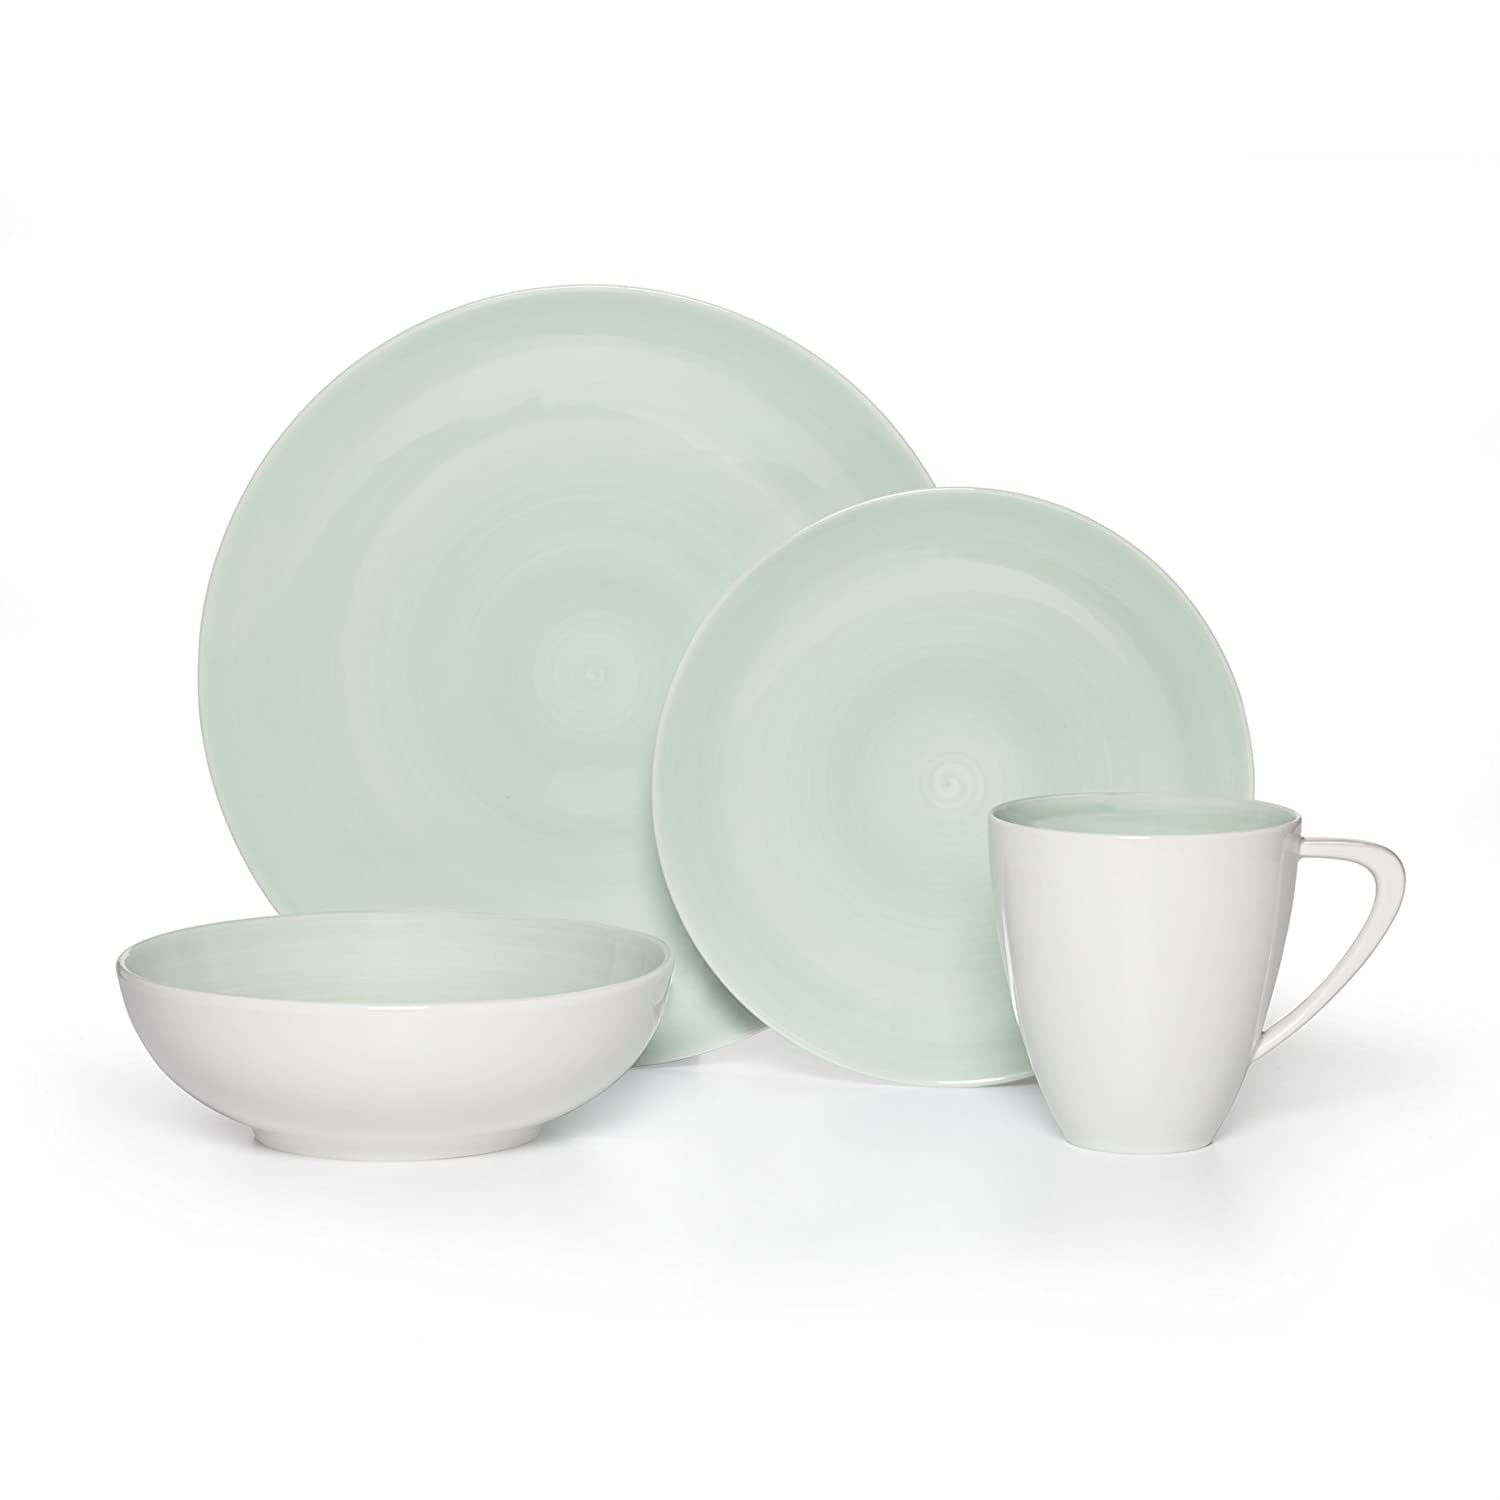 Teal Mikasa Savona Grey 4-Piece Place Setting, Service for 1